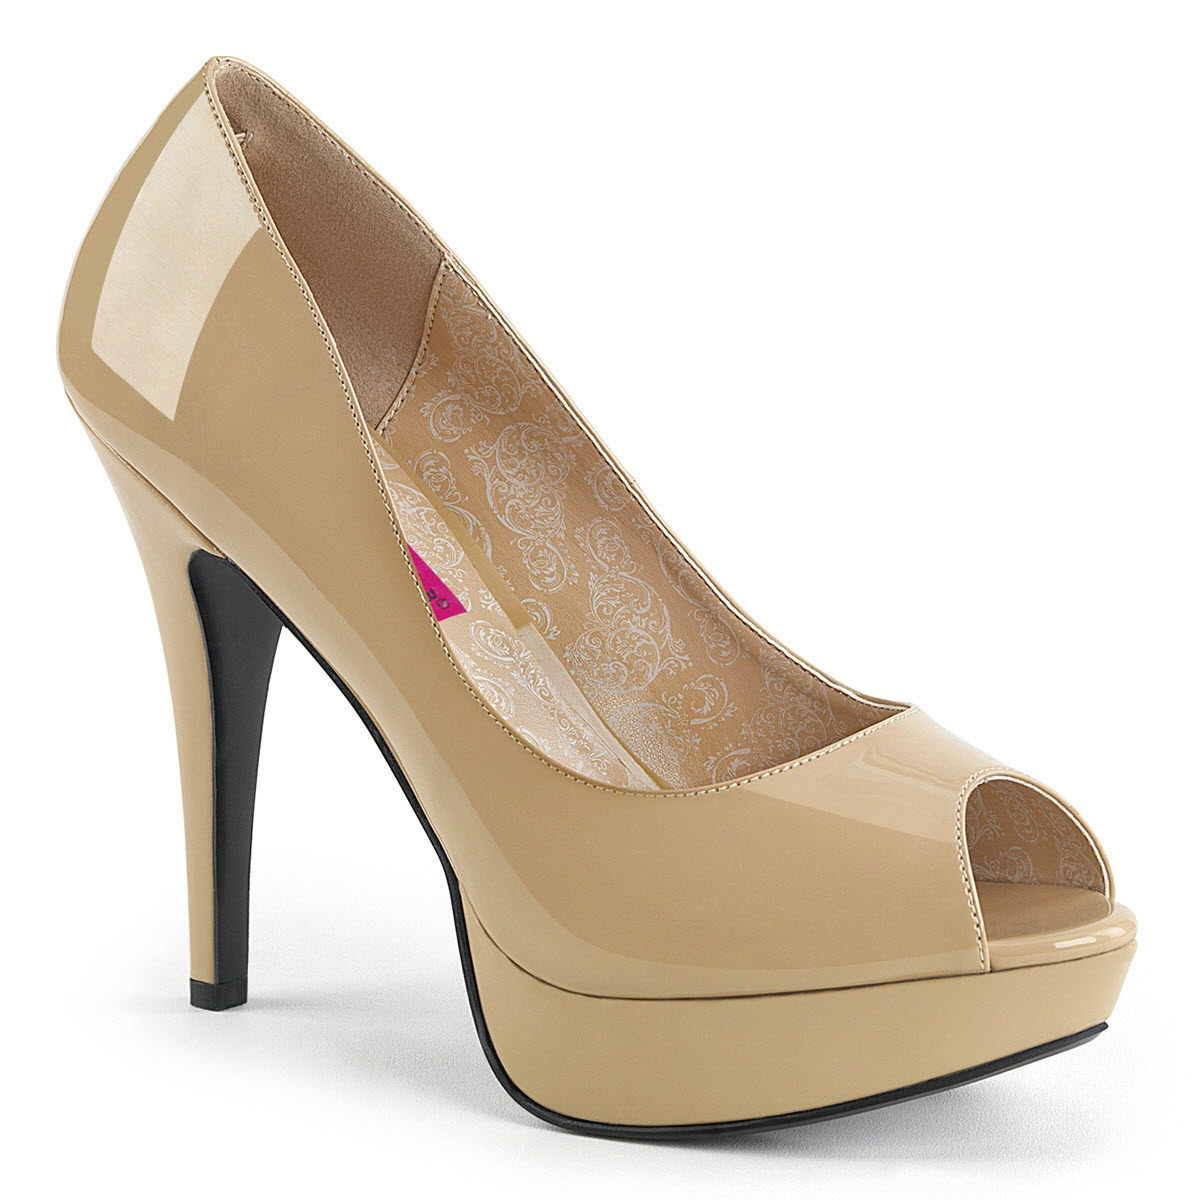 Image of Peep-Toe Pumps, CHLOE-01, Lack, Beige-14